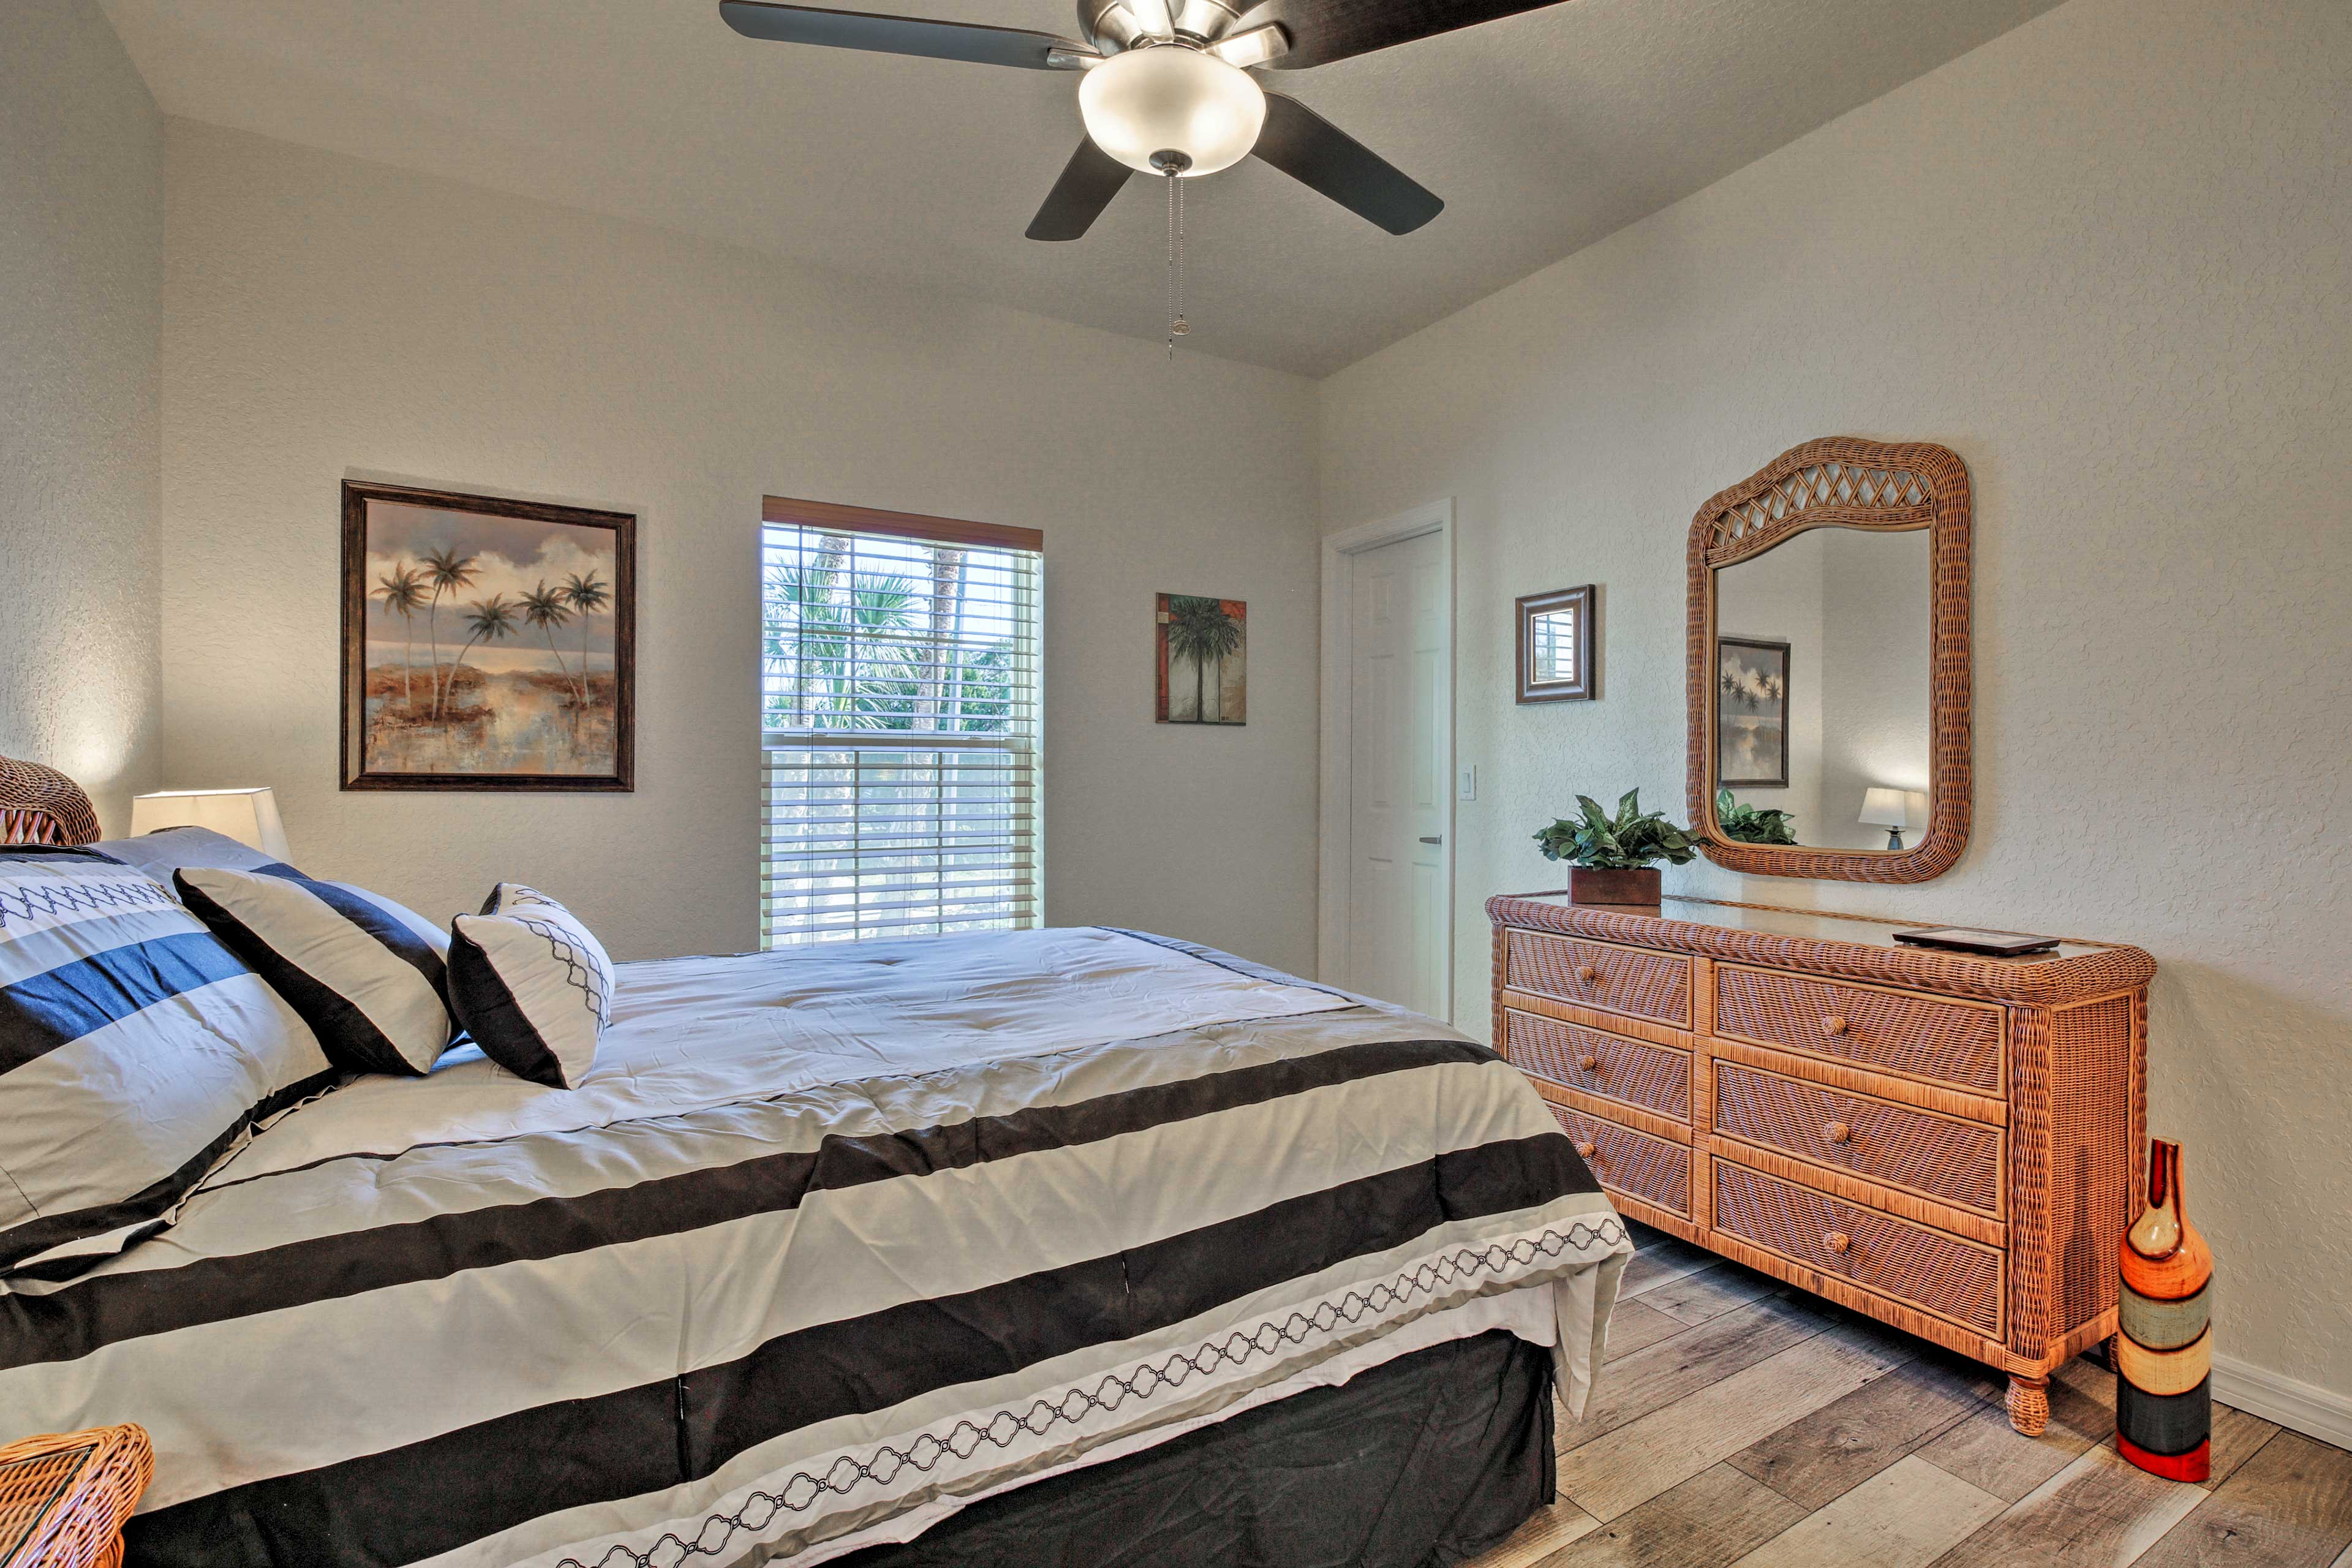 The third bedroom also boasts a queen bed.